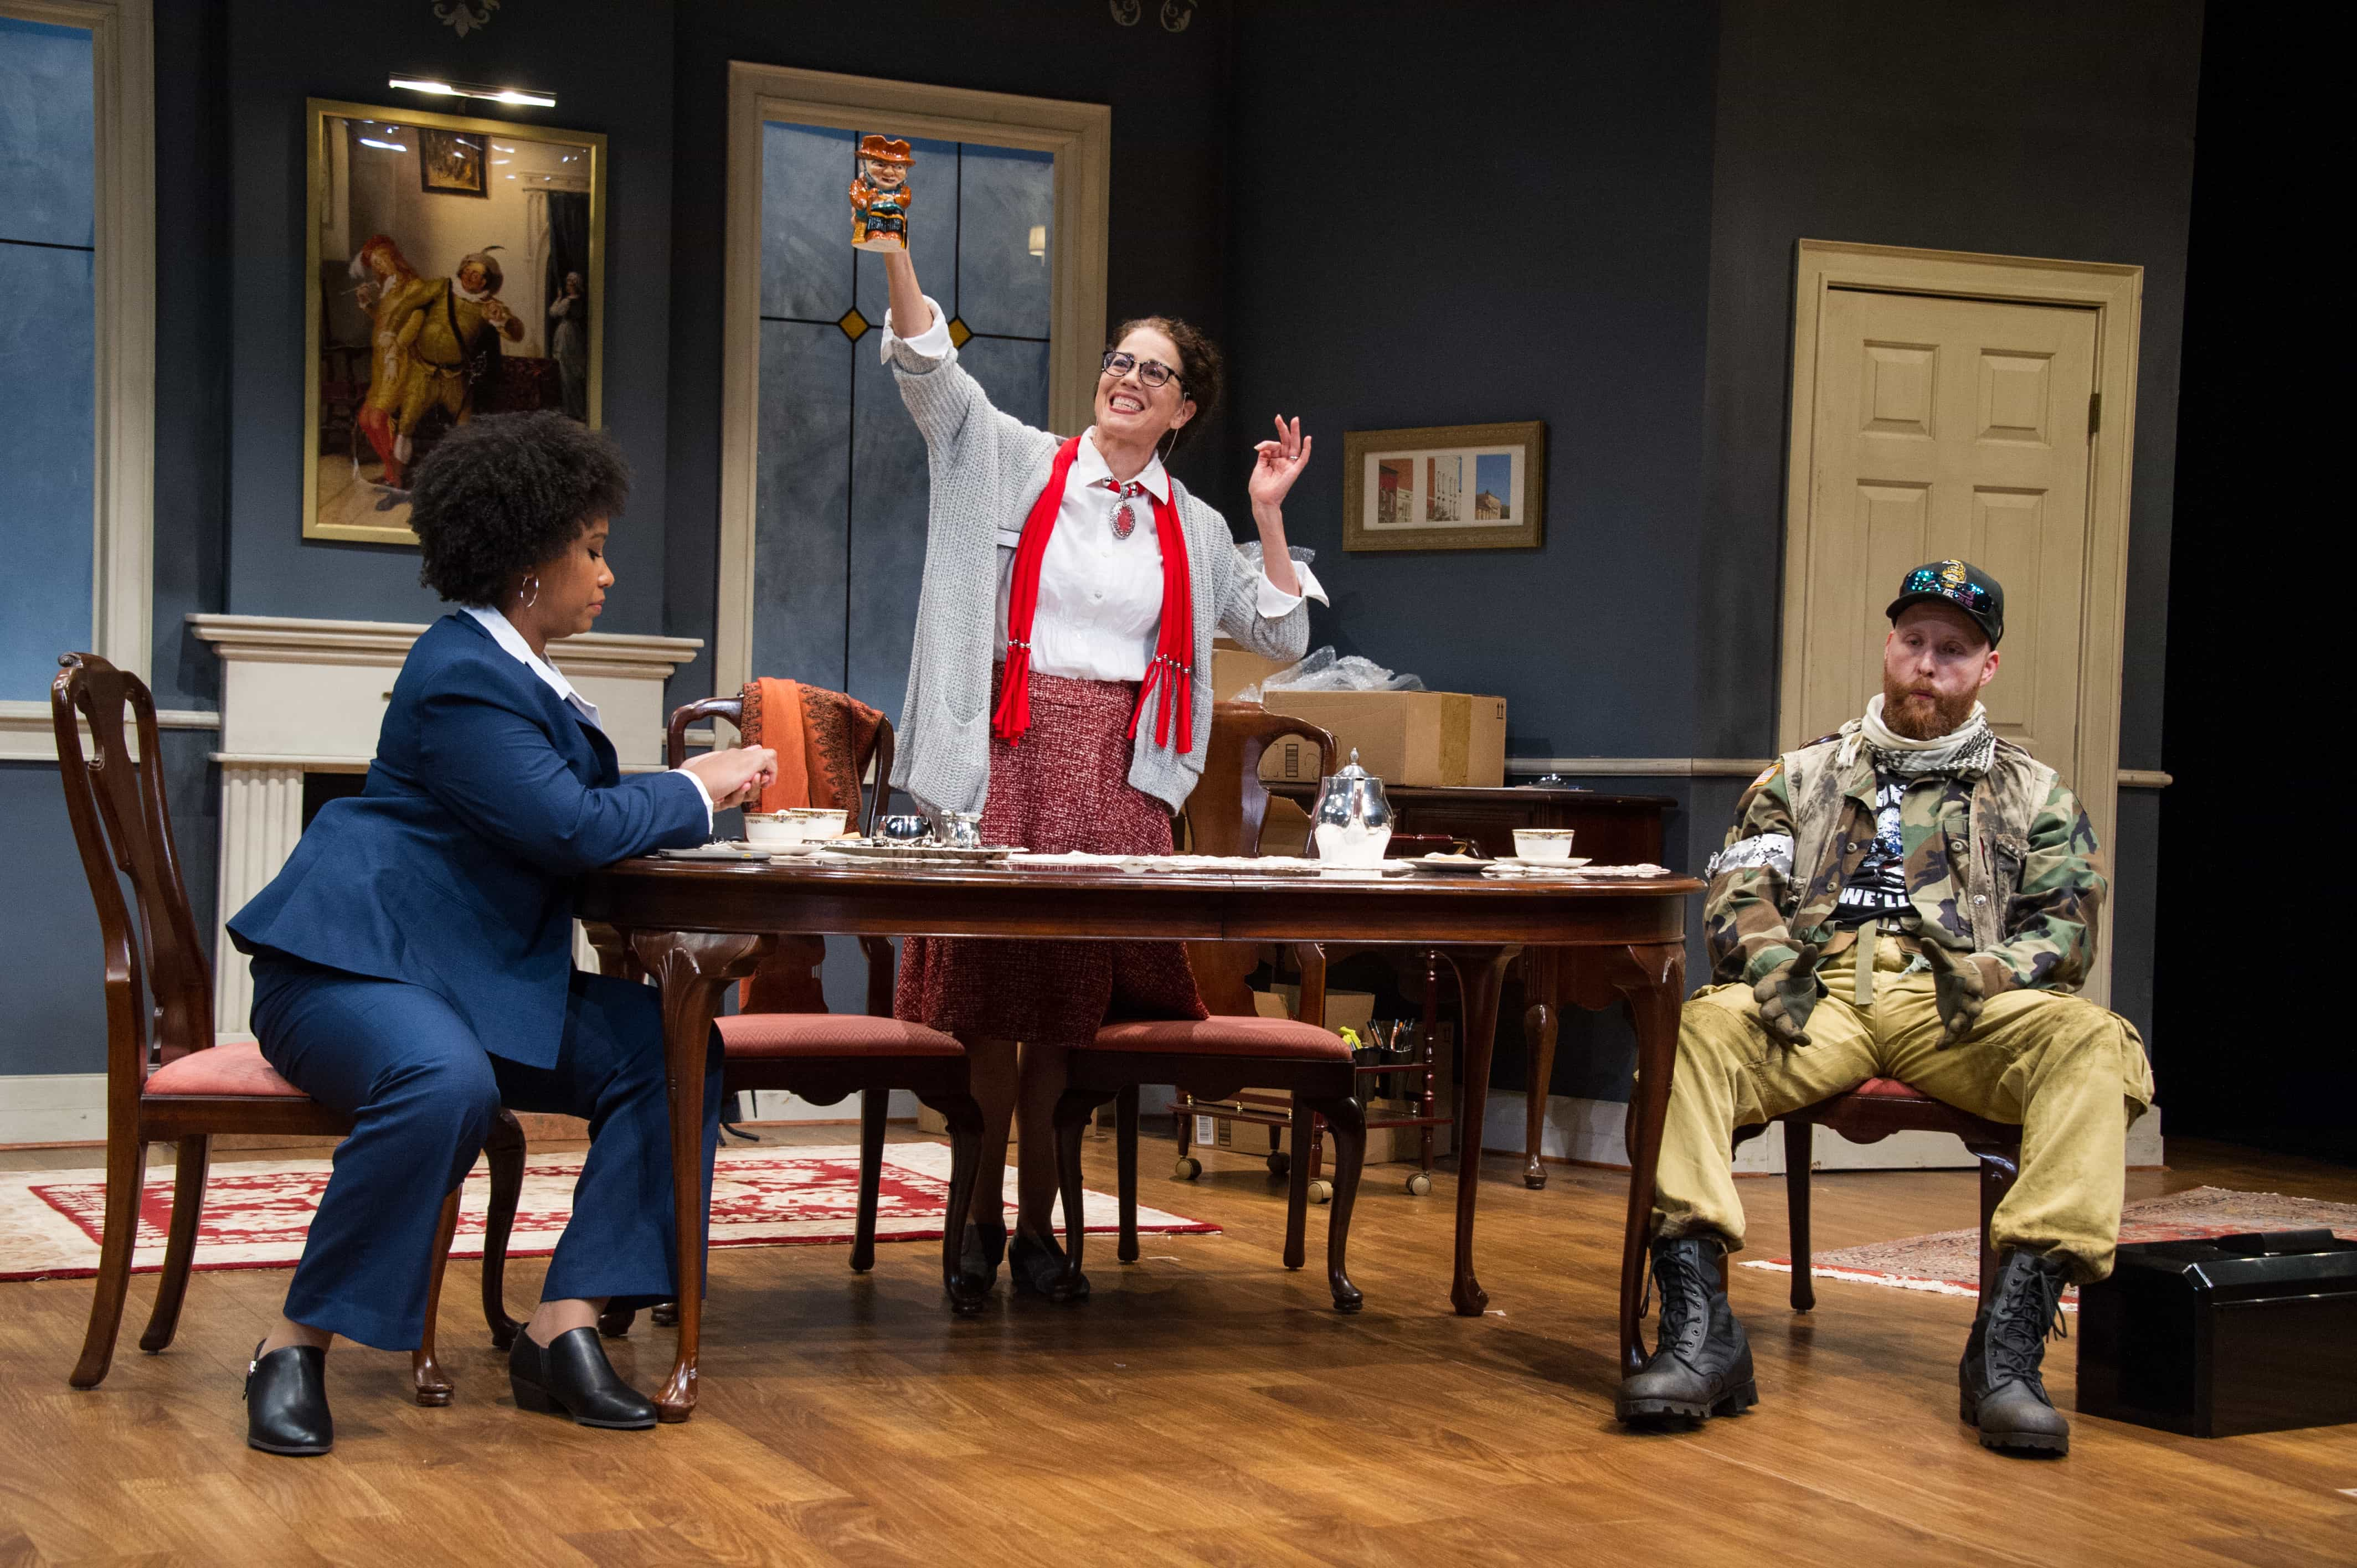 L-R: Briana Elyse Hunter, Elizabeth Futral, and Timothy Mix in UrbanArias' The Last American Hammer, playing through September 29 at the Atlas Performing Arts Center. Photo by C. Stanley Photography.